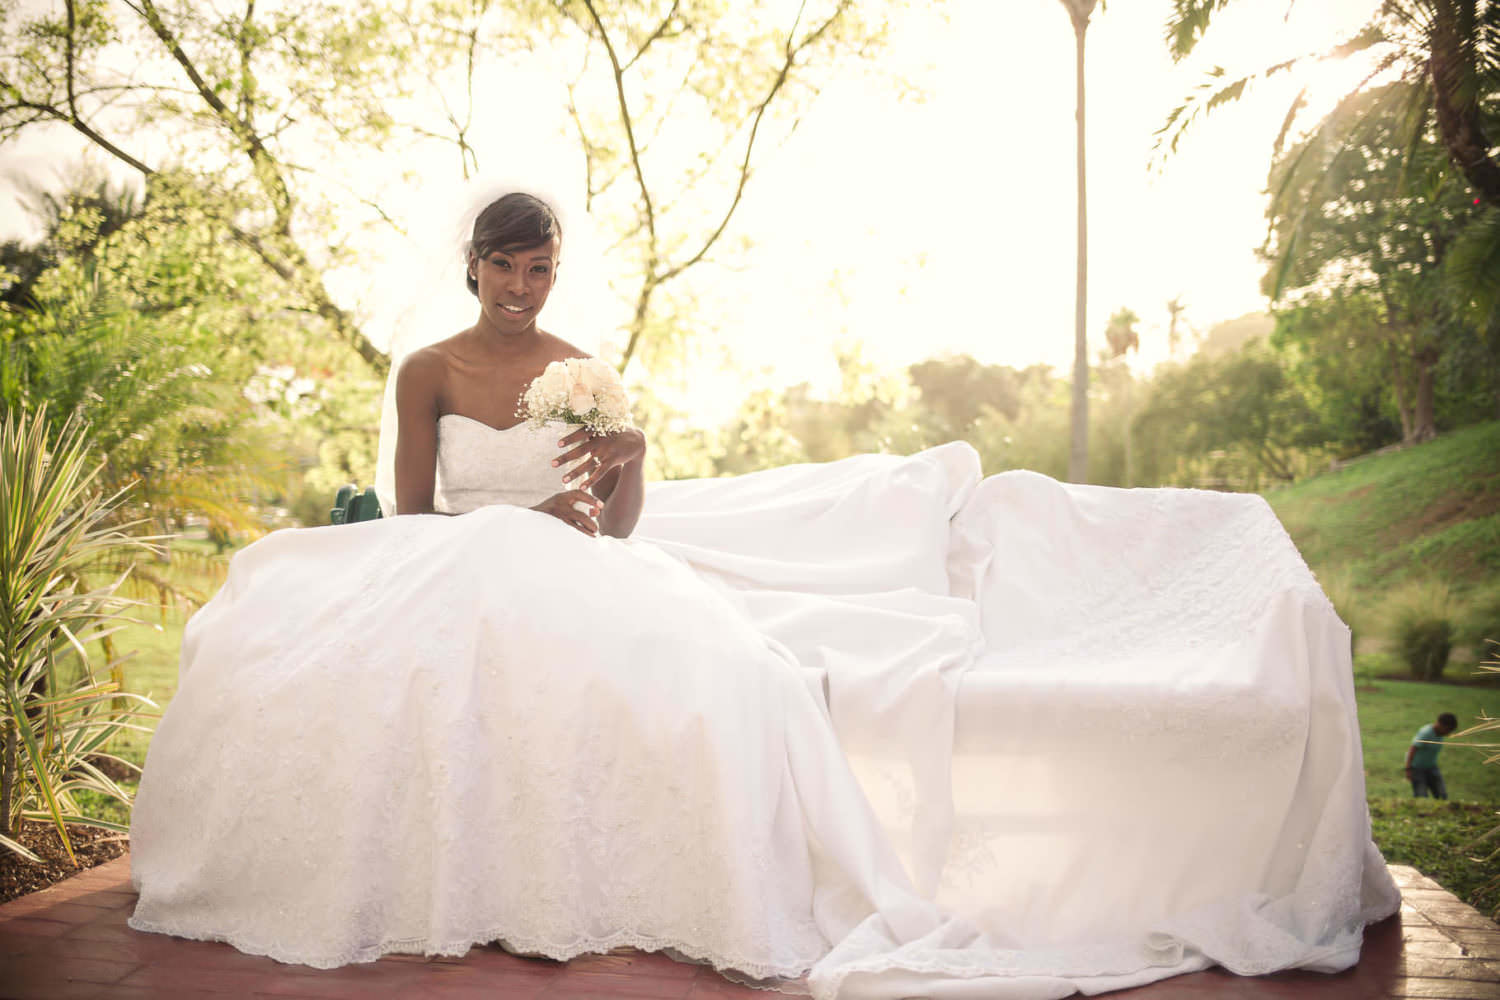 Bride sits with dress covering bench in park backlit by the golden sun